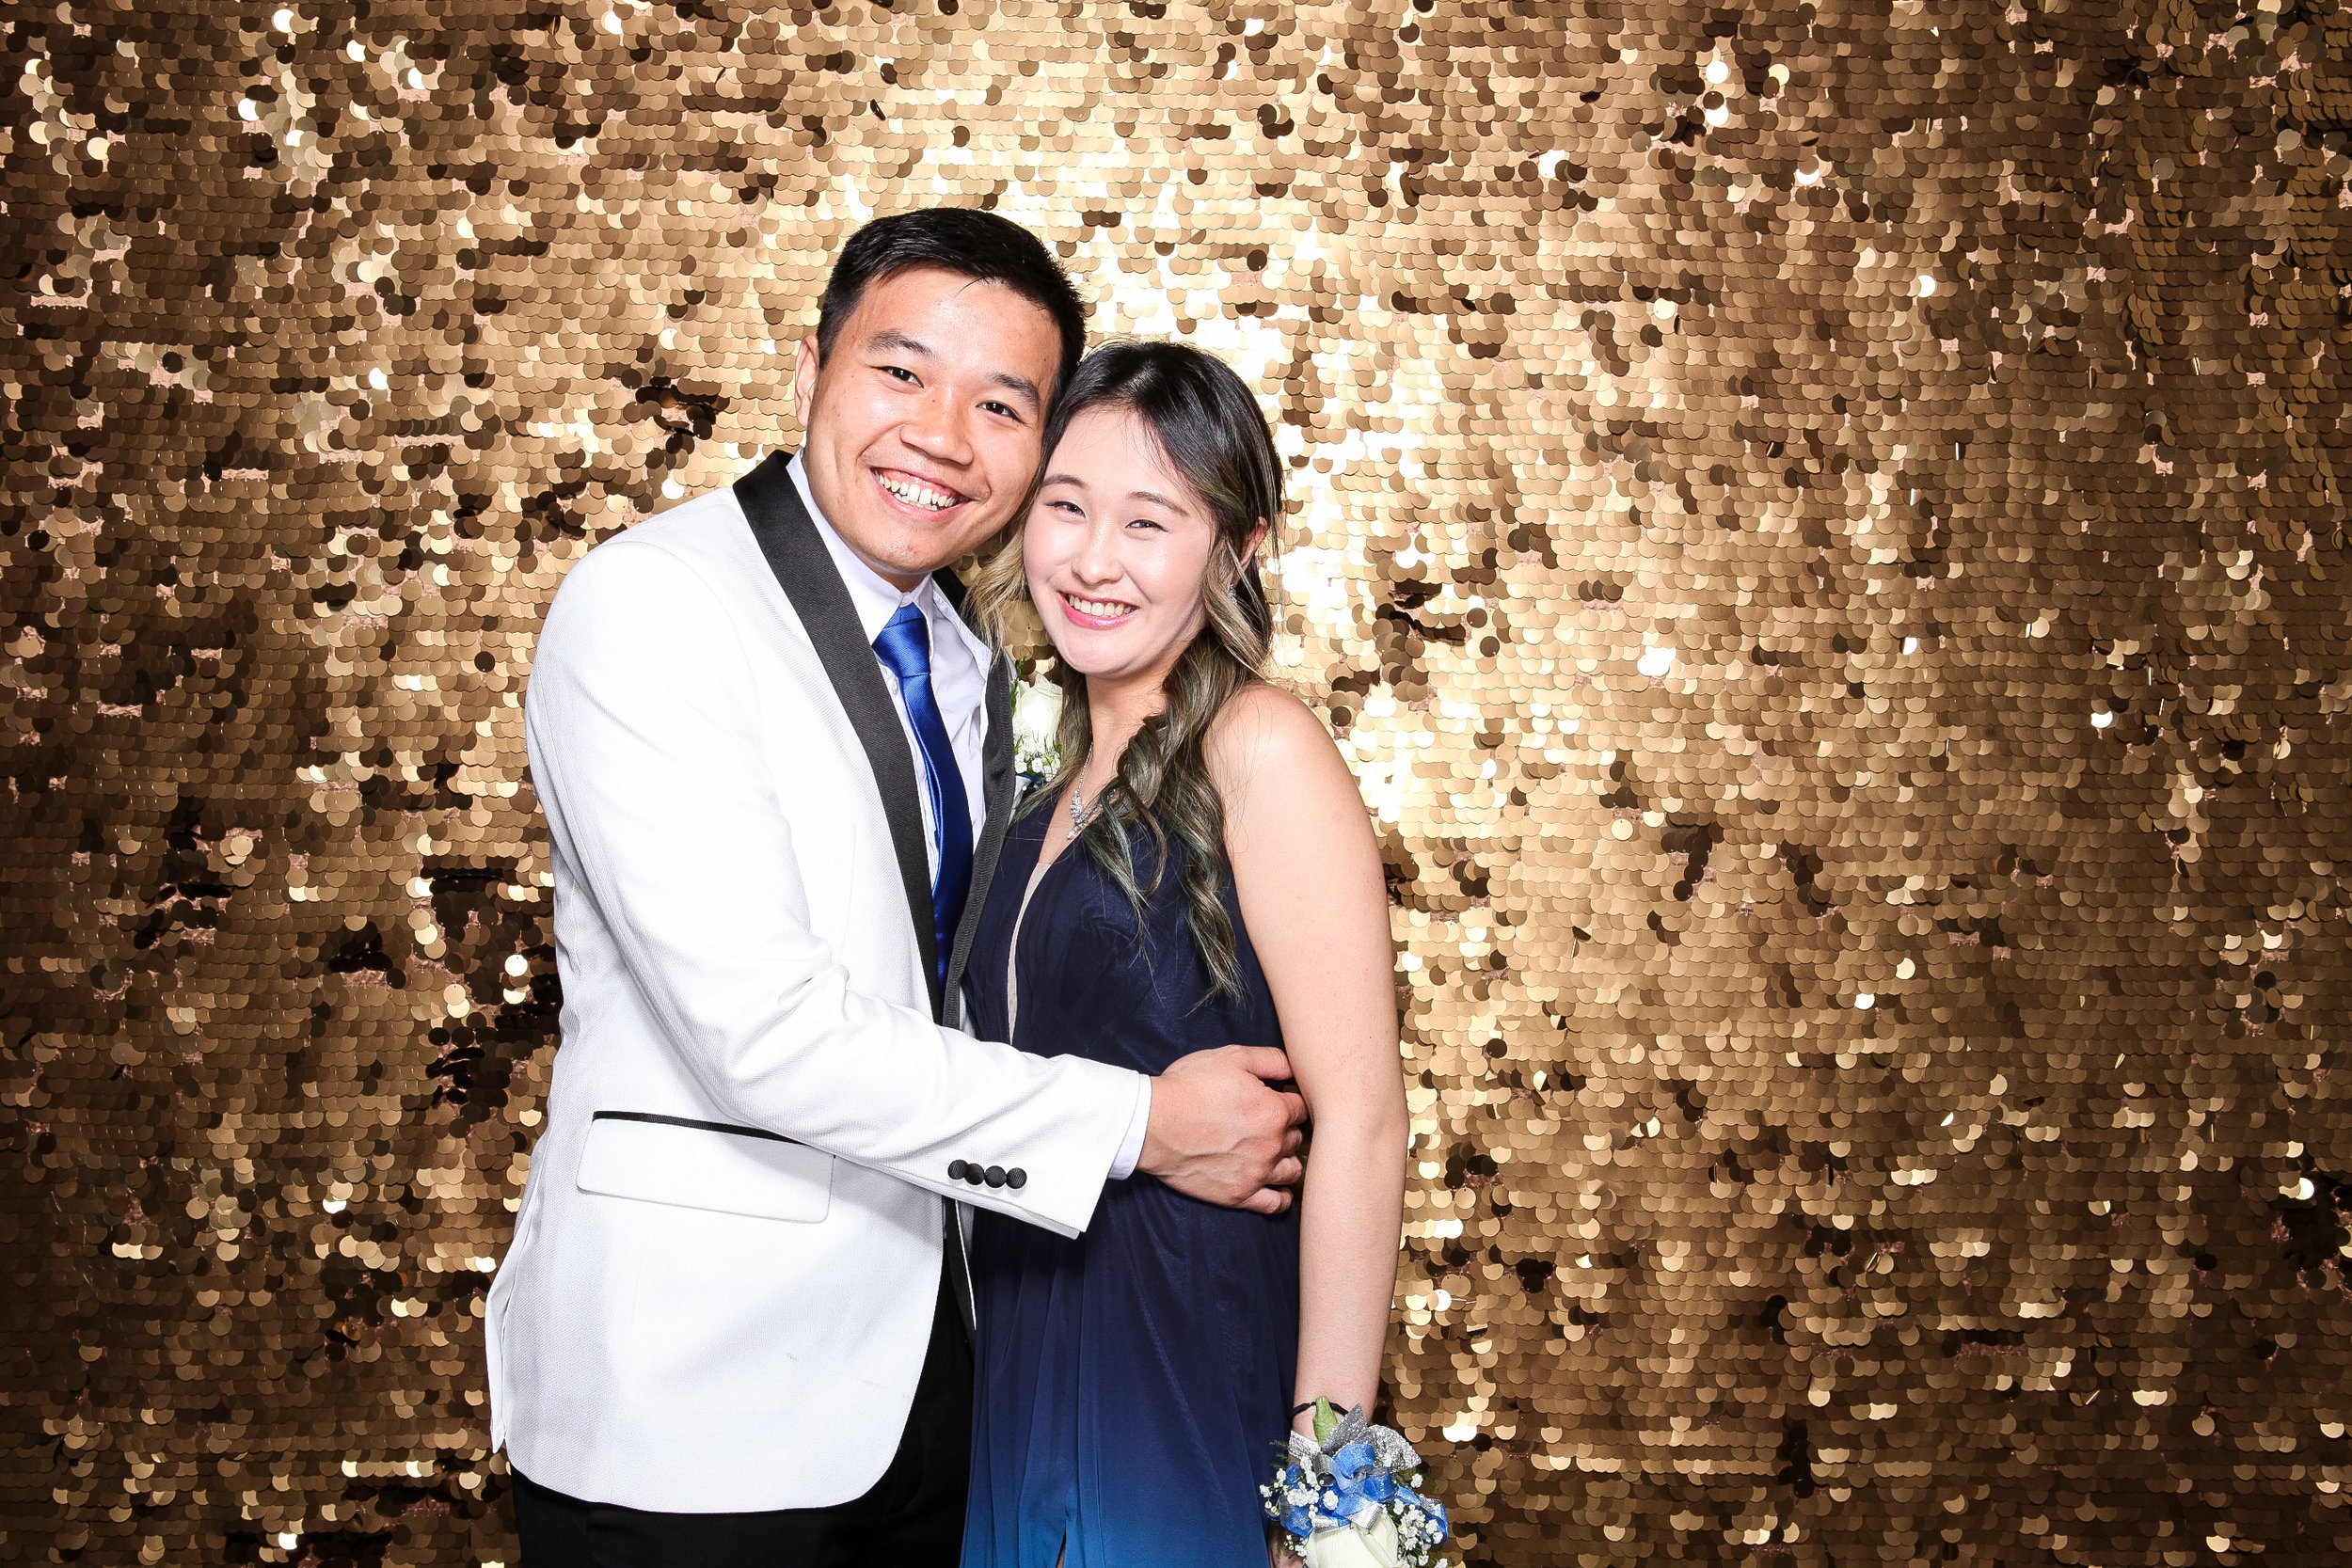 20190503_Adelphi_Senior_Formal-062.jpg